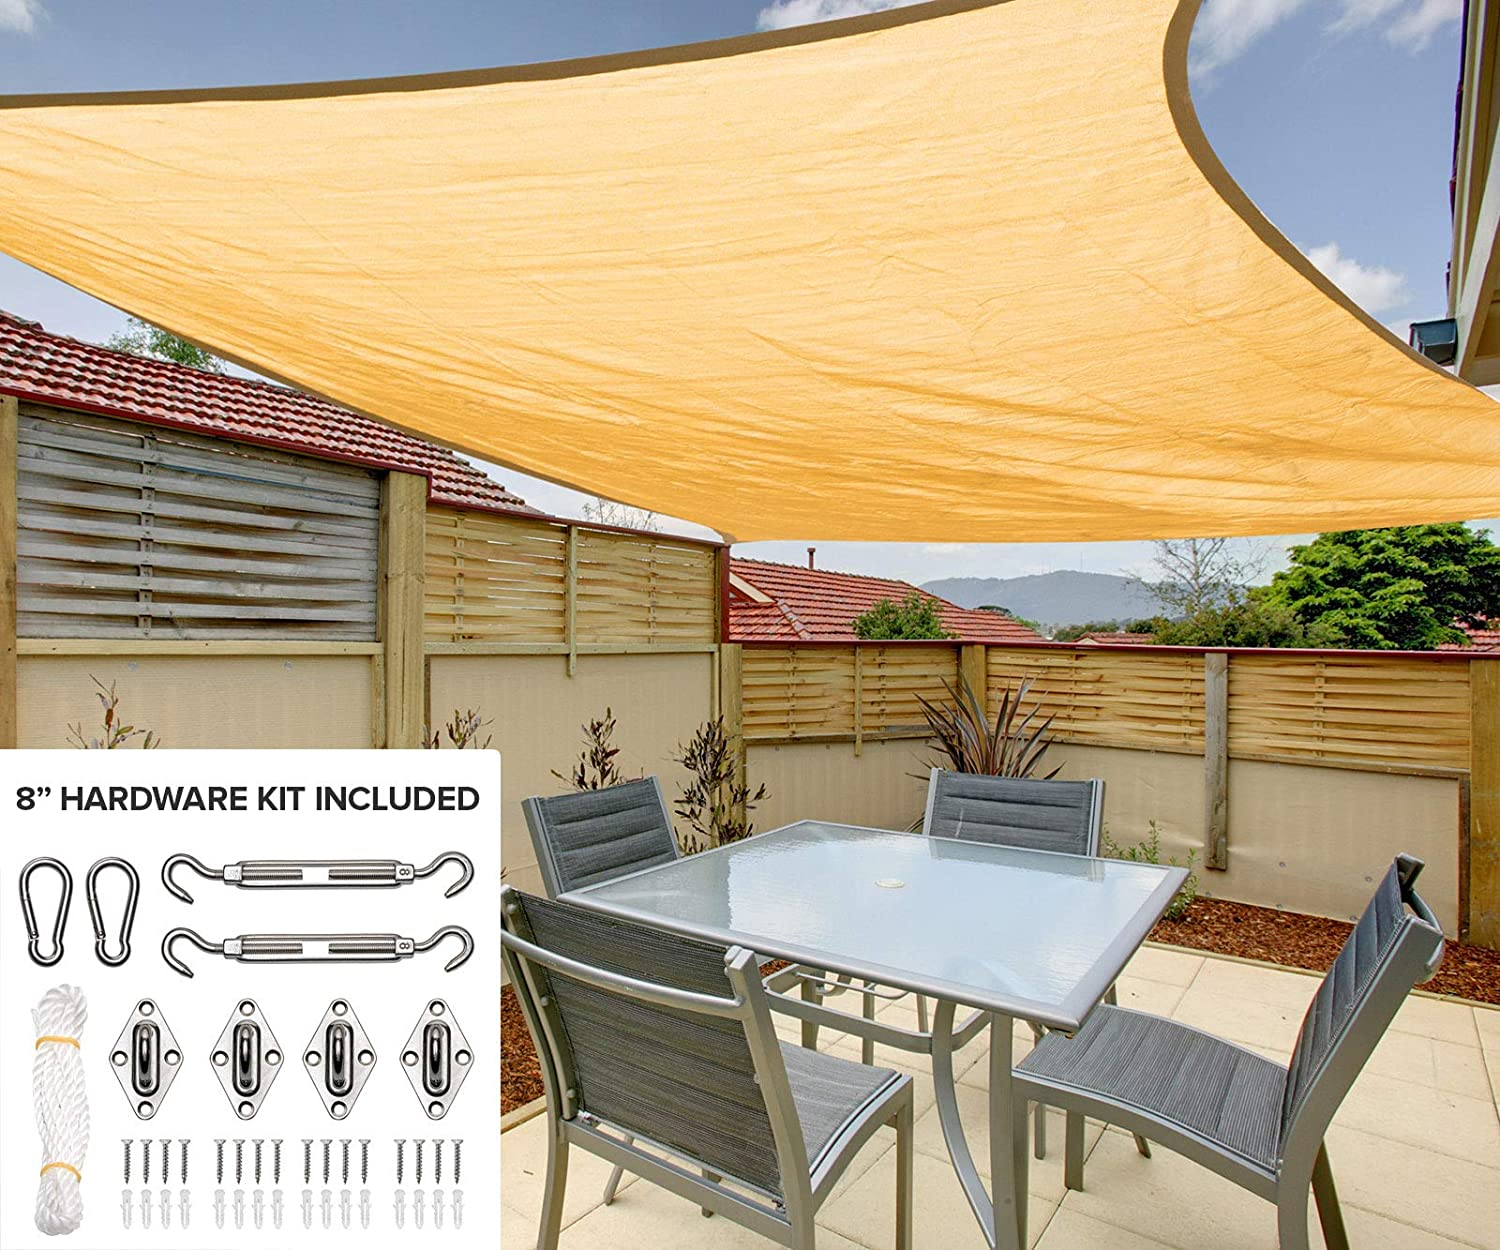 12 x16 Rectangle Sun Shade Sail Canopy in Sunburst- Durable Outdoor Patio Cover Pergola Awning – Heavy Duty 8 inch Stainless Steel Hardware Kit 12 x16 Rectangle, Sunburst